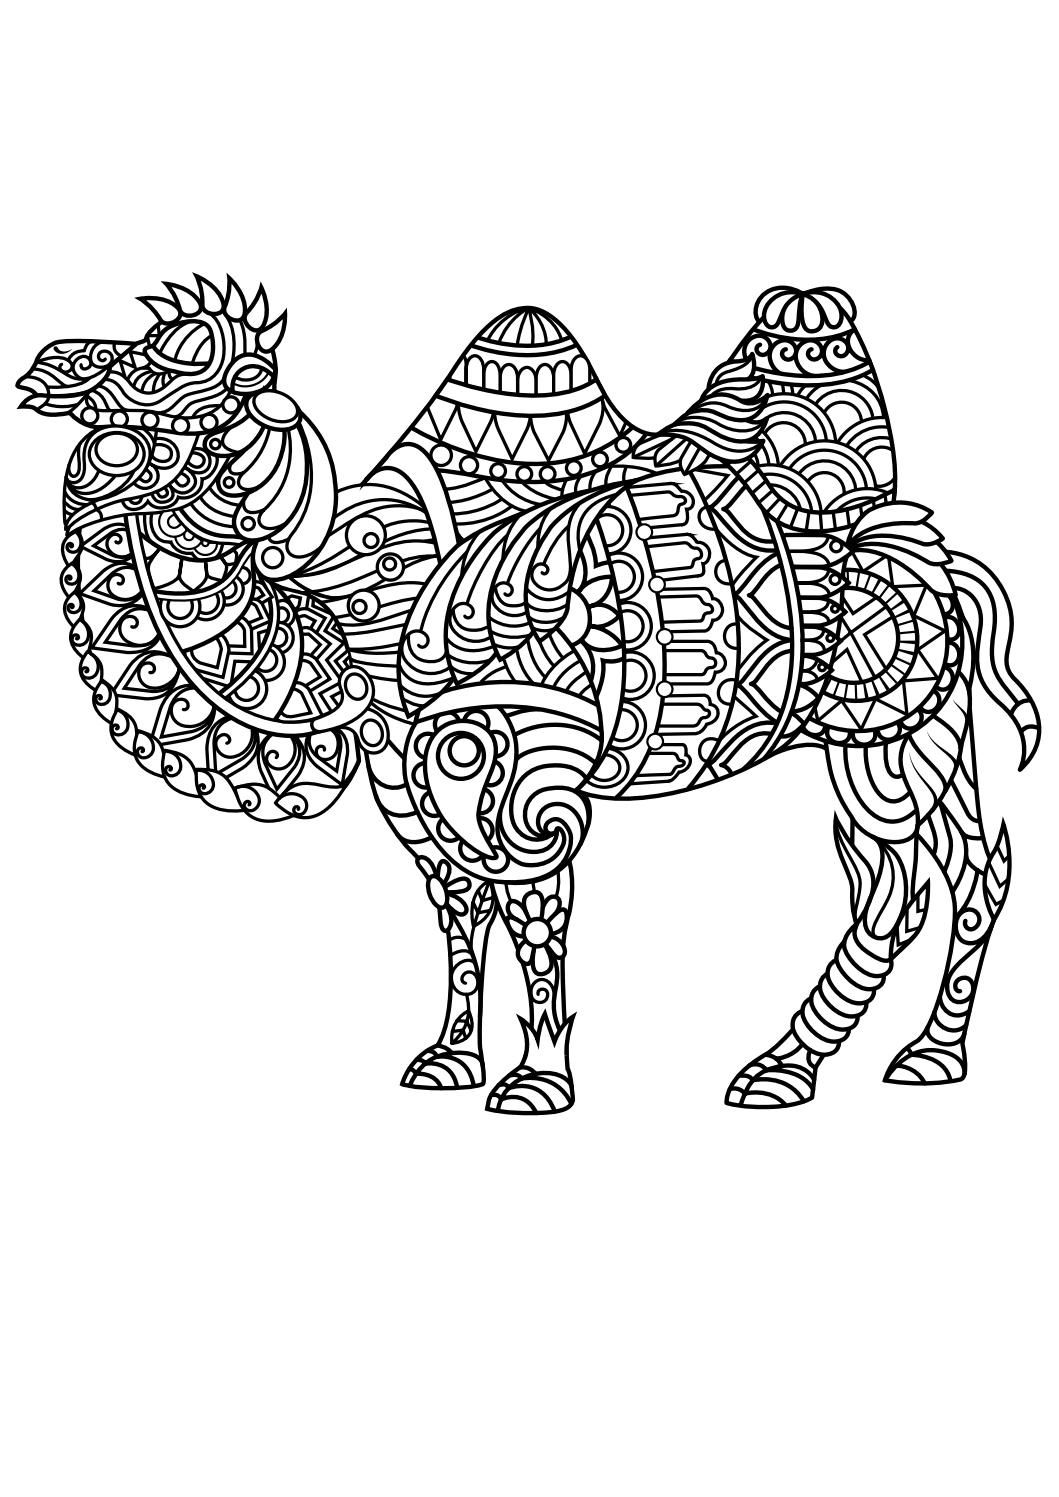 Animal Coloring Pages Pdf Animal Coloring Pages Pdf  Adult Coloring Coloring Books And Pdf